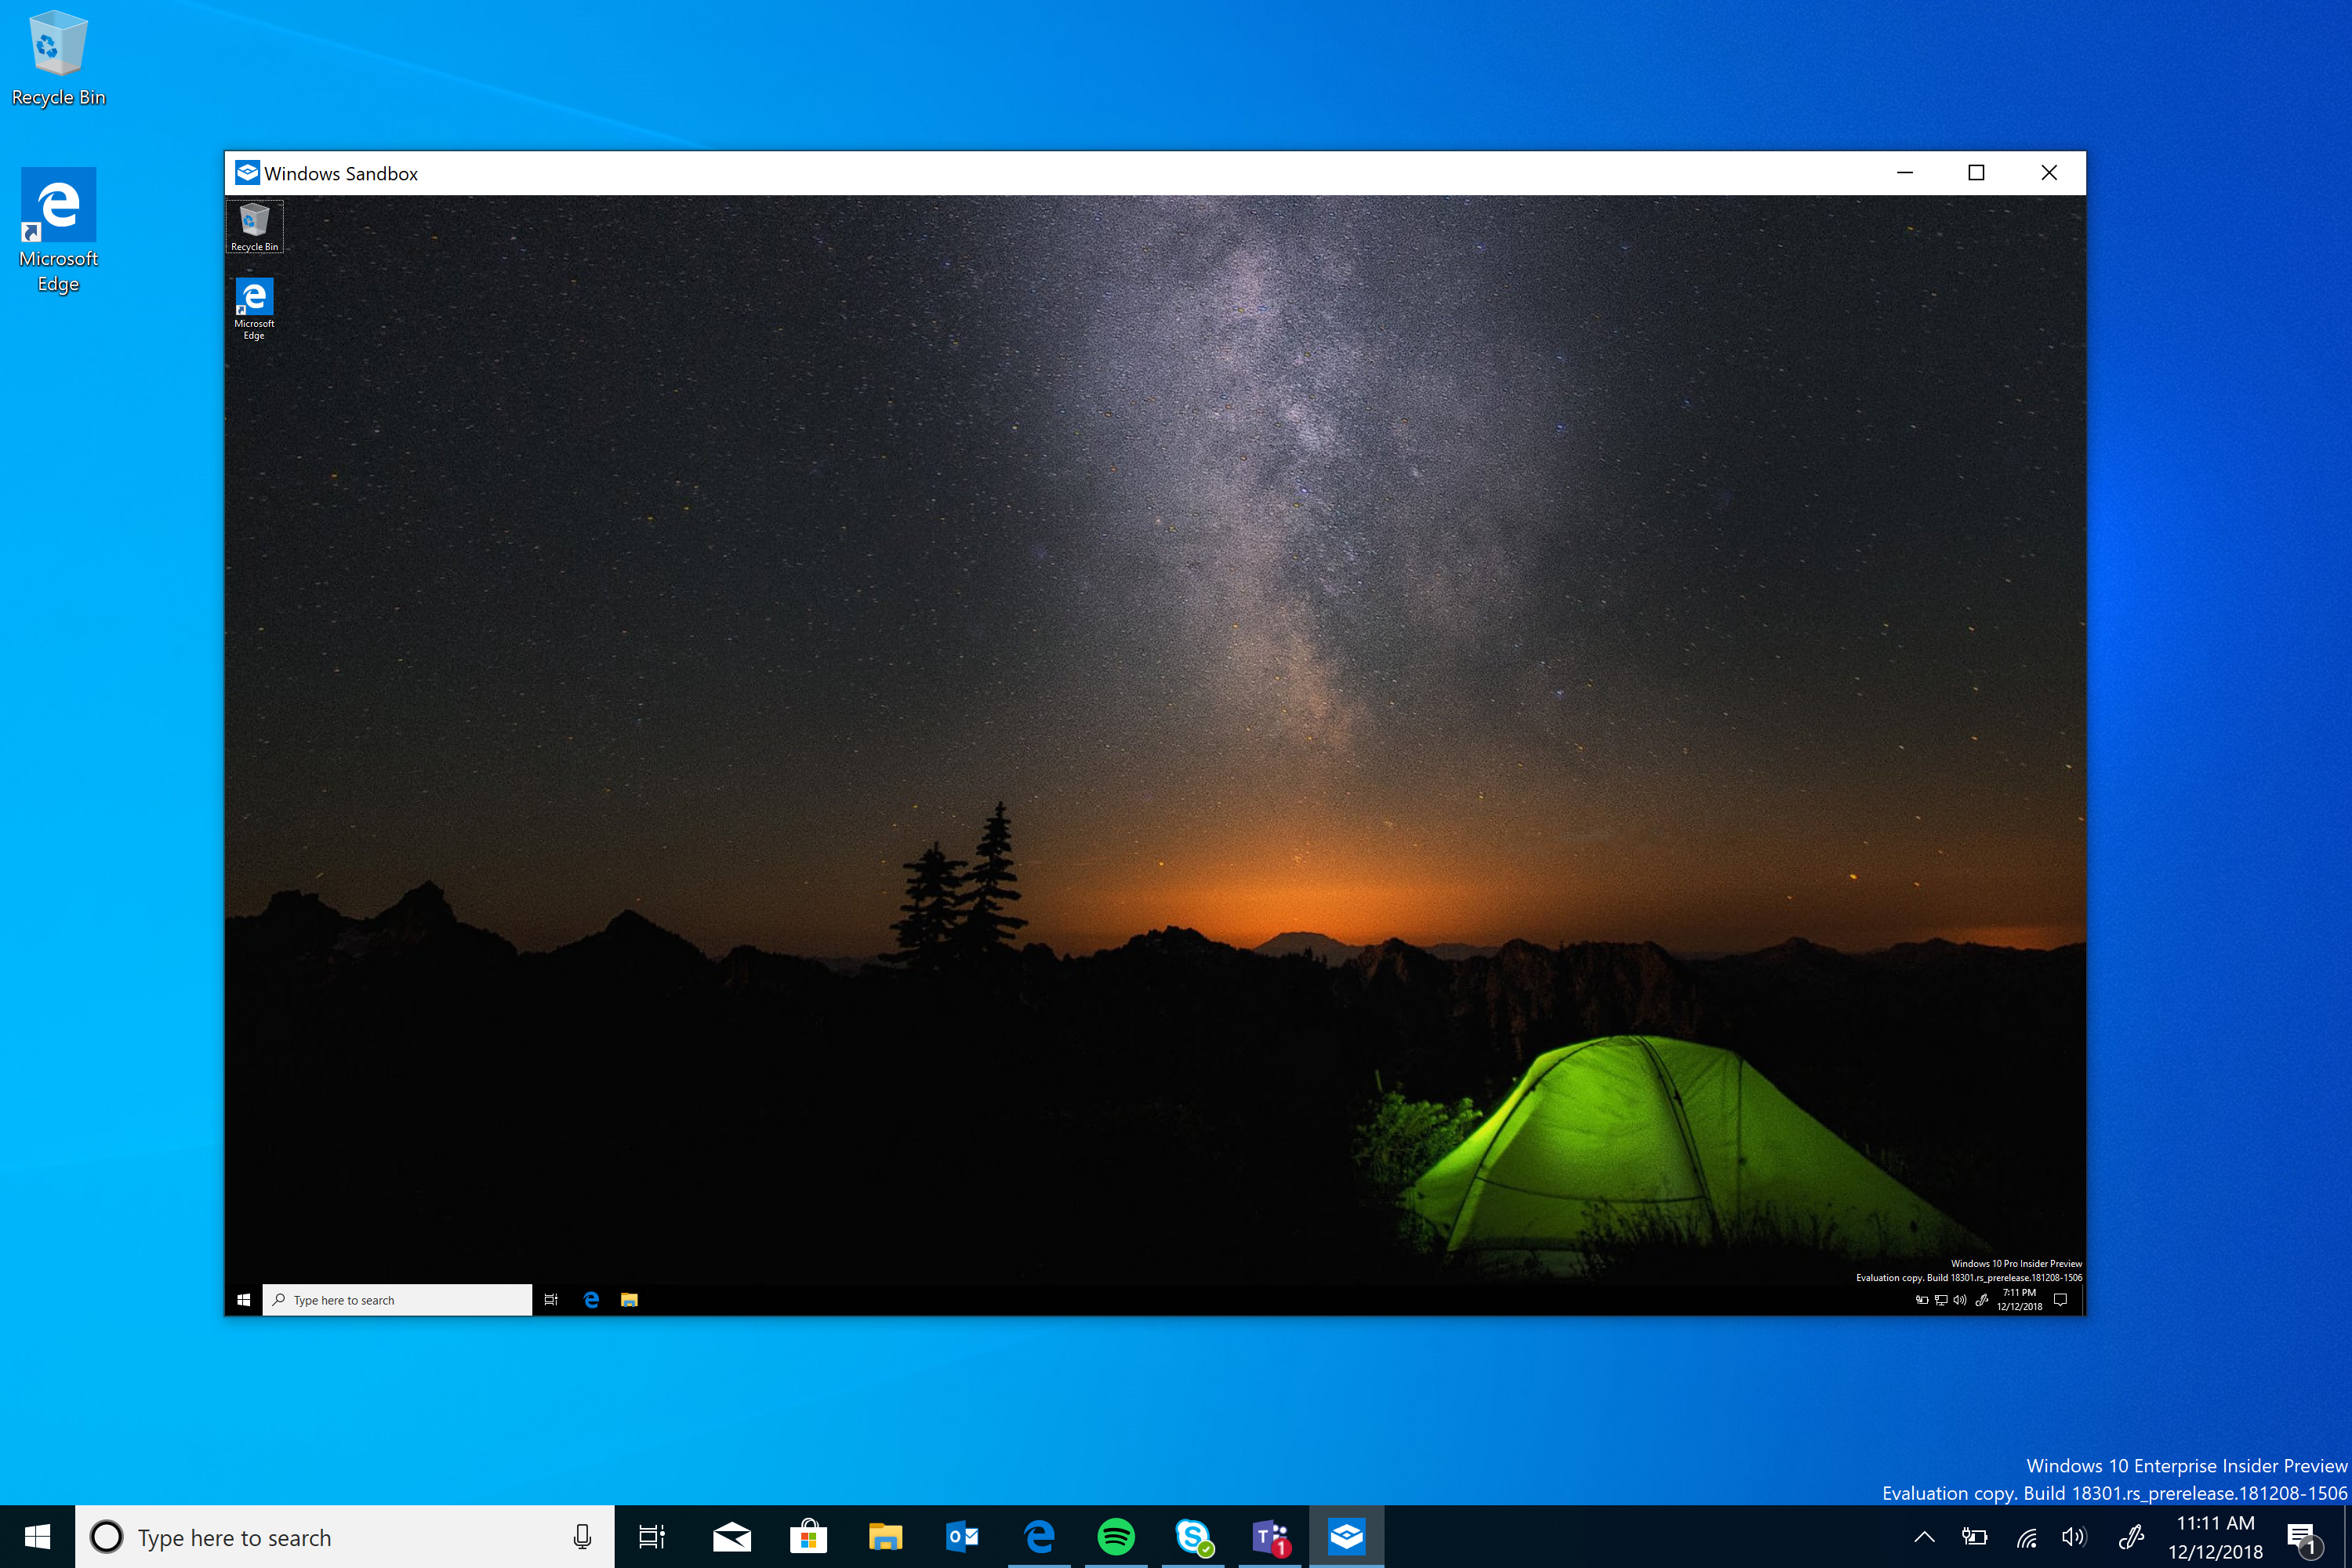 A Windows Sandbox VM window open on a user's normal desktop.